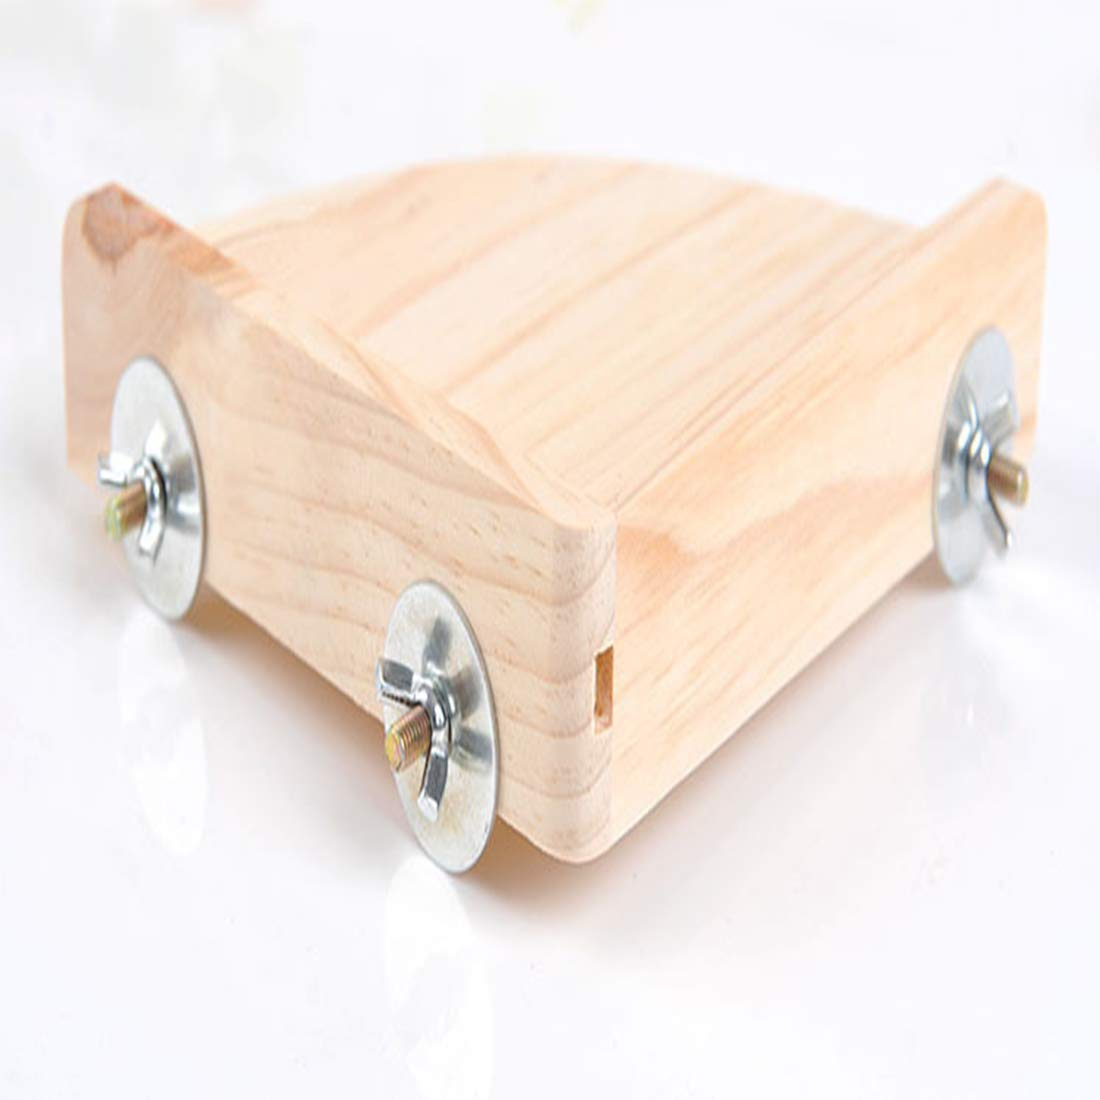 MQUPIN Natural Wood Platform Stand Wood for Small Animals Parrot Parakeet Gerbil Rat Mouse Hamster Cage Accessories Exercise Toys Sector